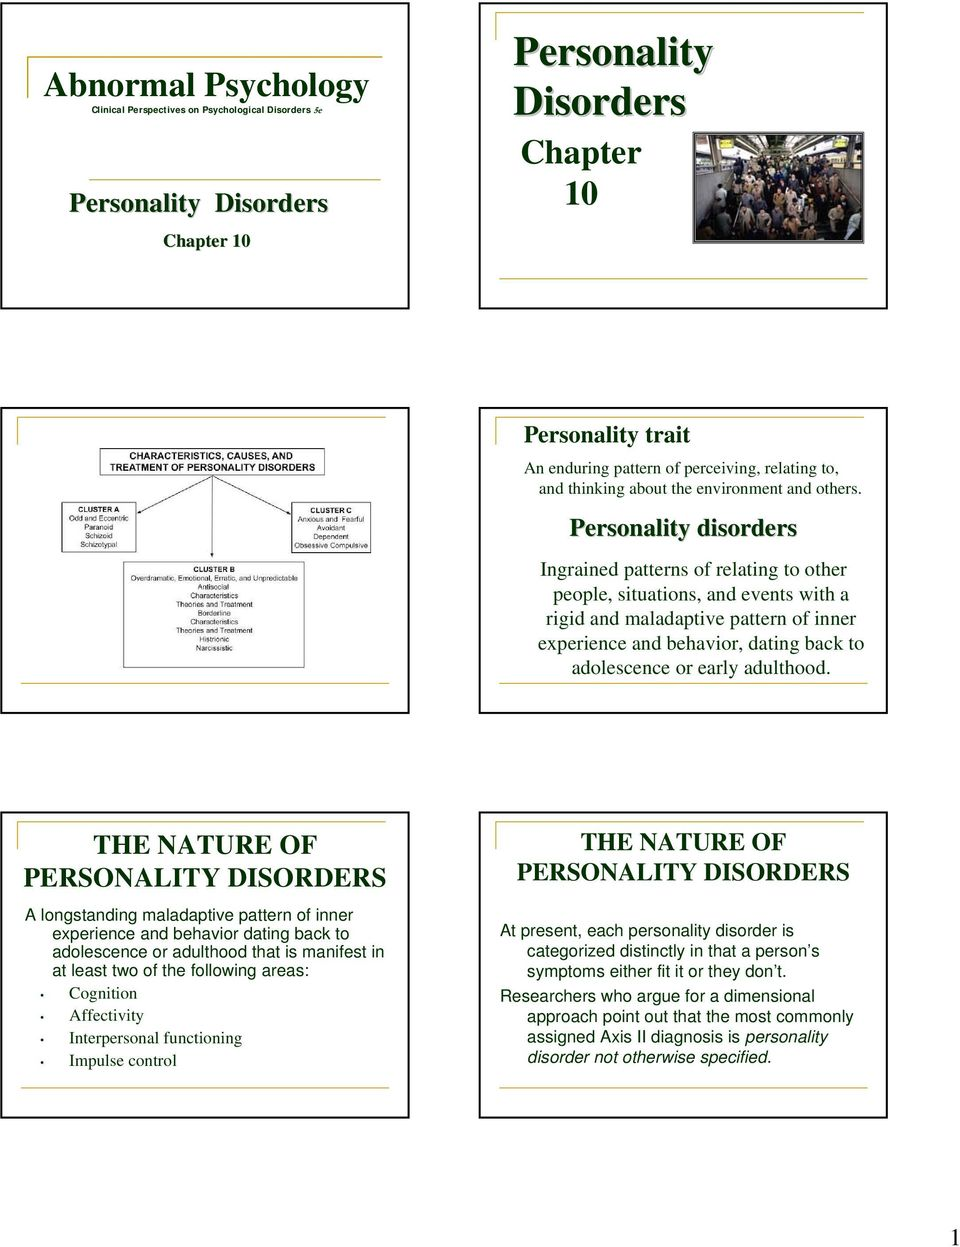 Personality disorders Ingrained patterns of relating to other people, situations, and events with a rigid and maladaptive pattern of inner experience and behavior, dating back to adolescence or early